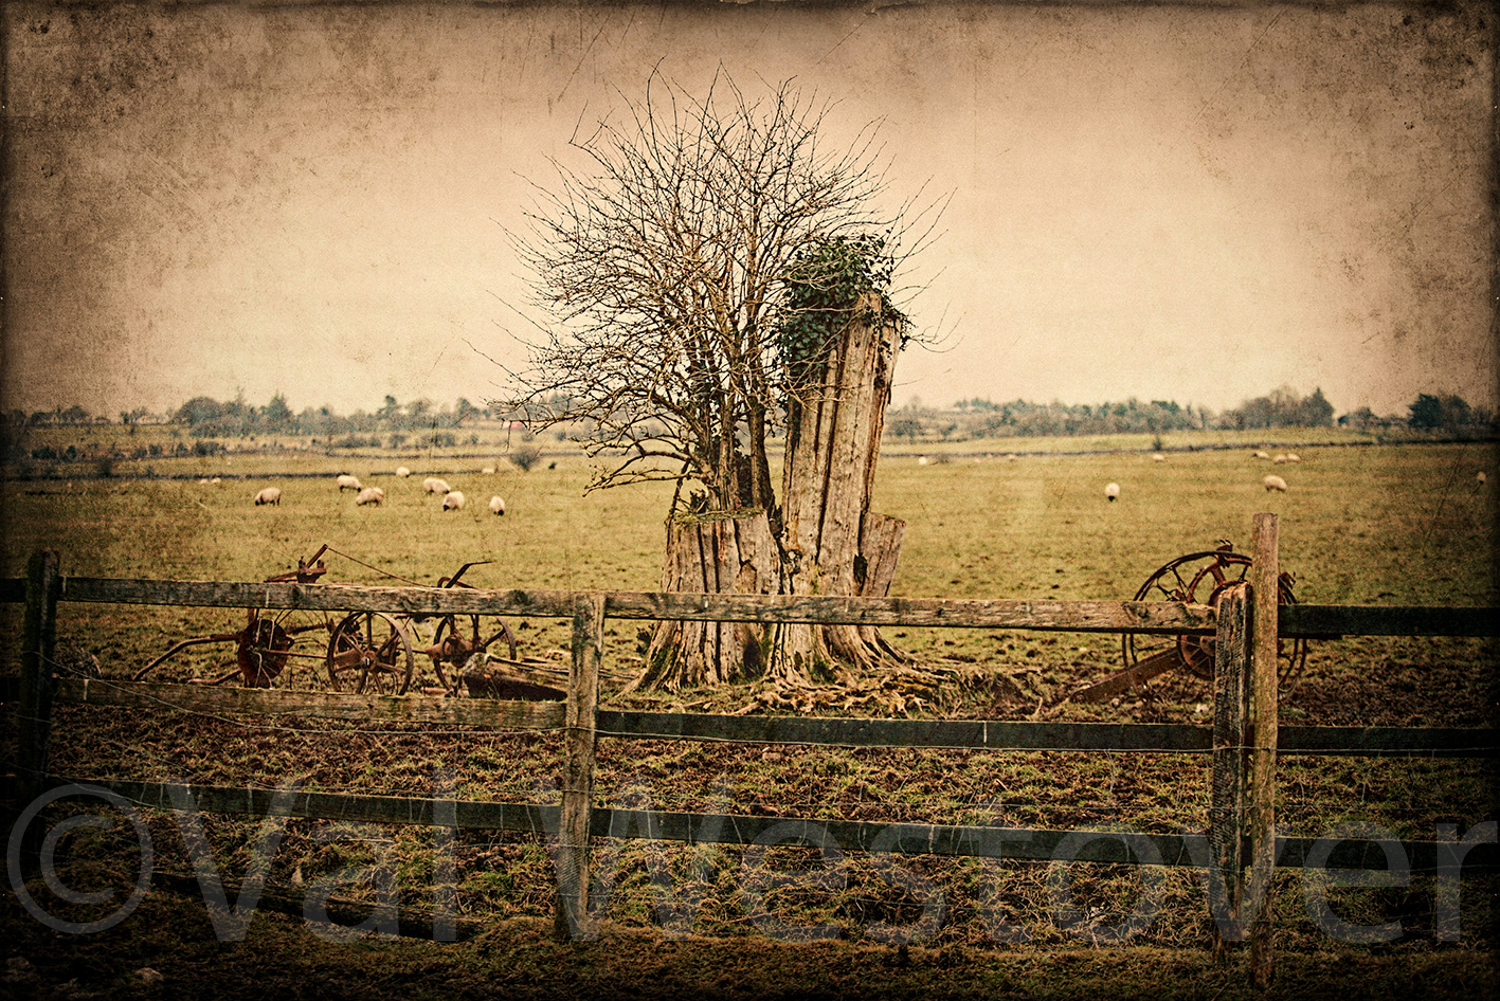 val-westover-photography--20.jpg